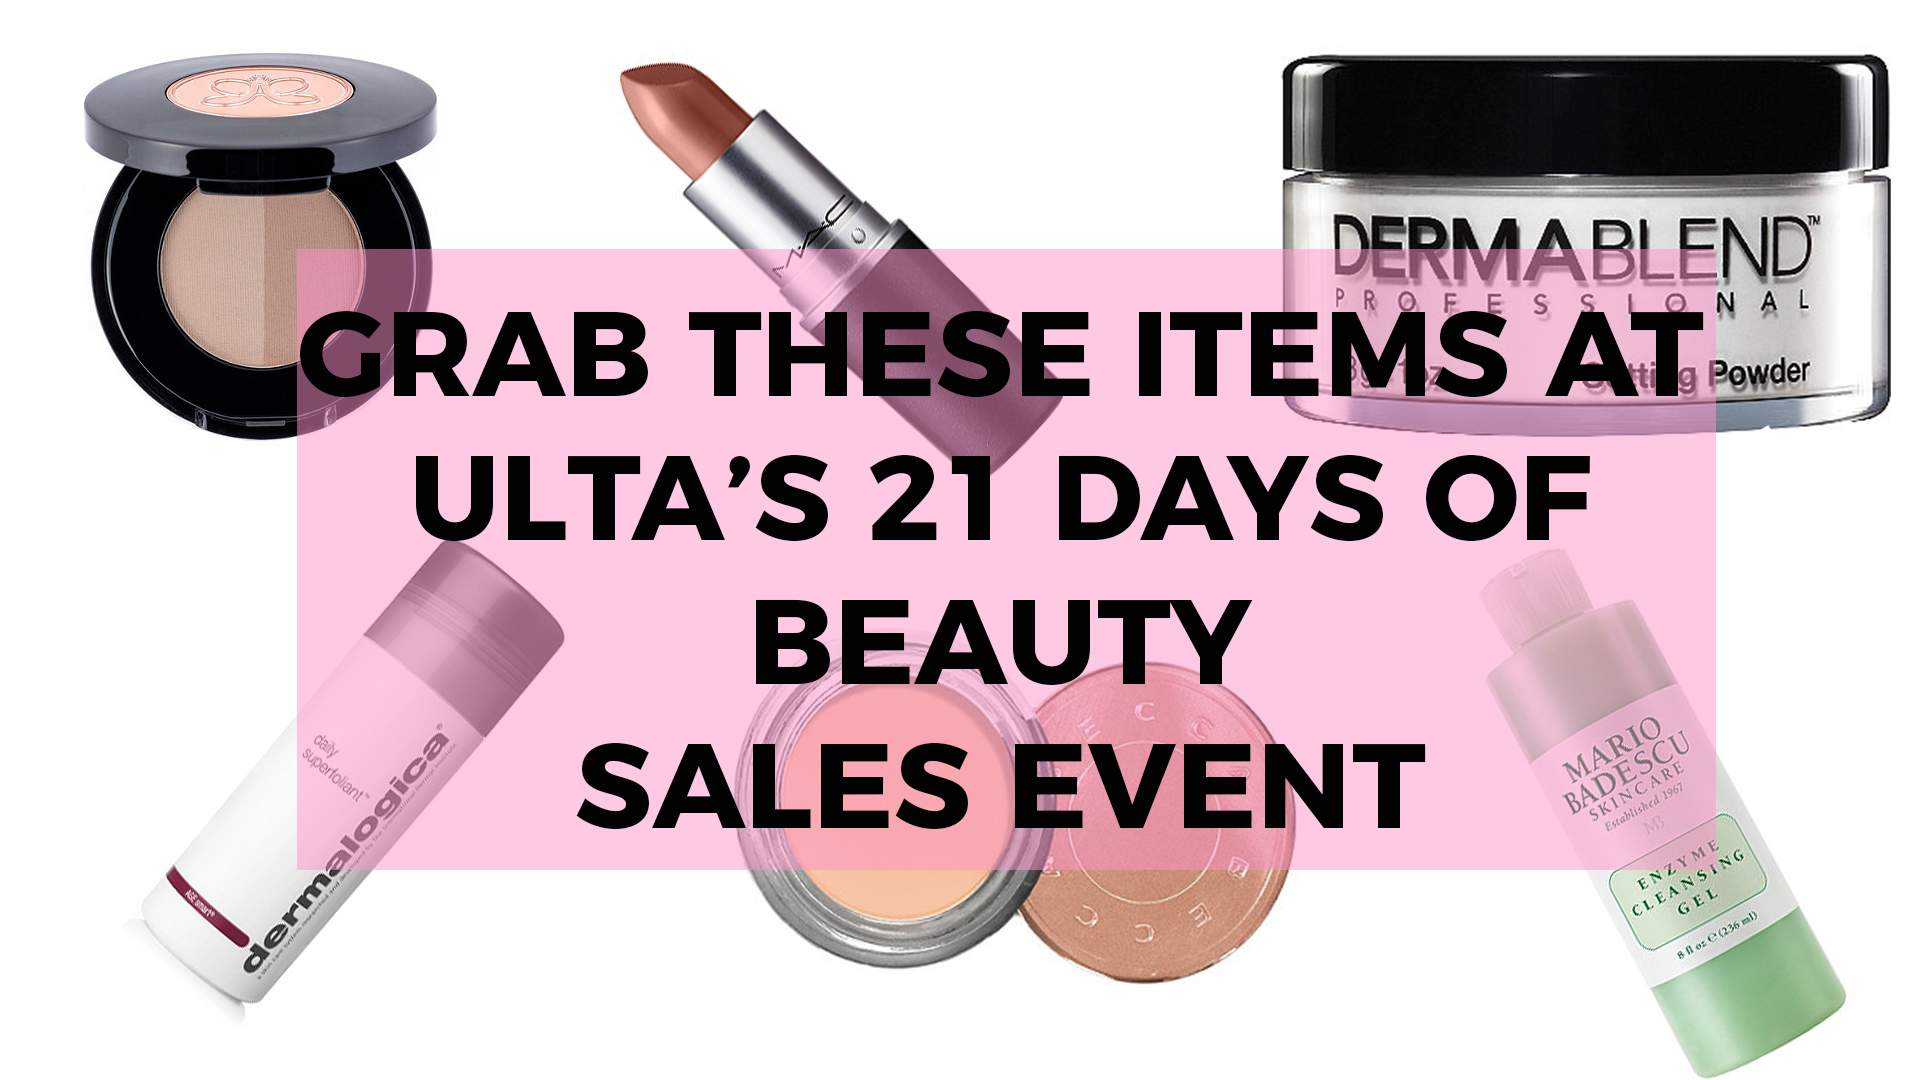 Ulta 21 Days of Beauty Sale